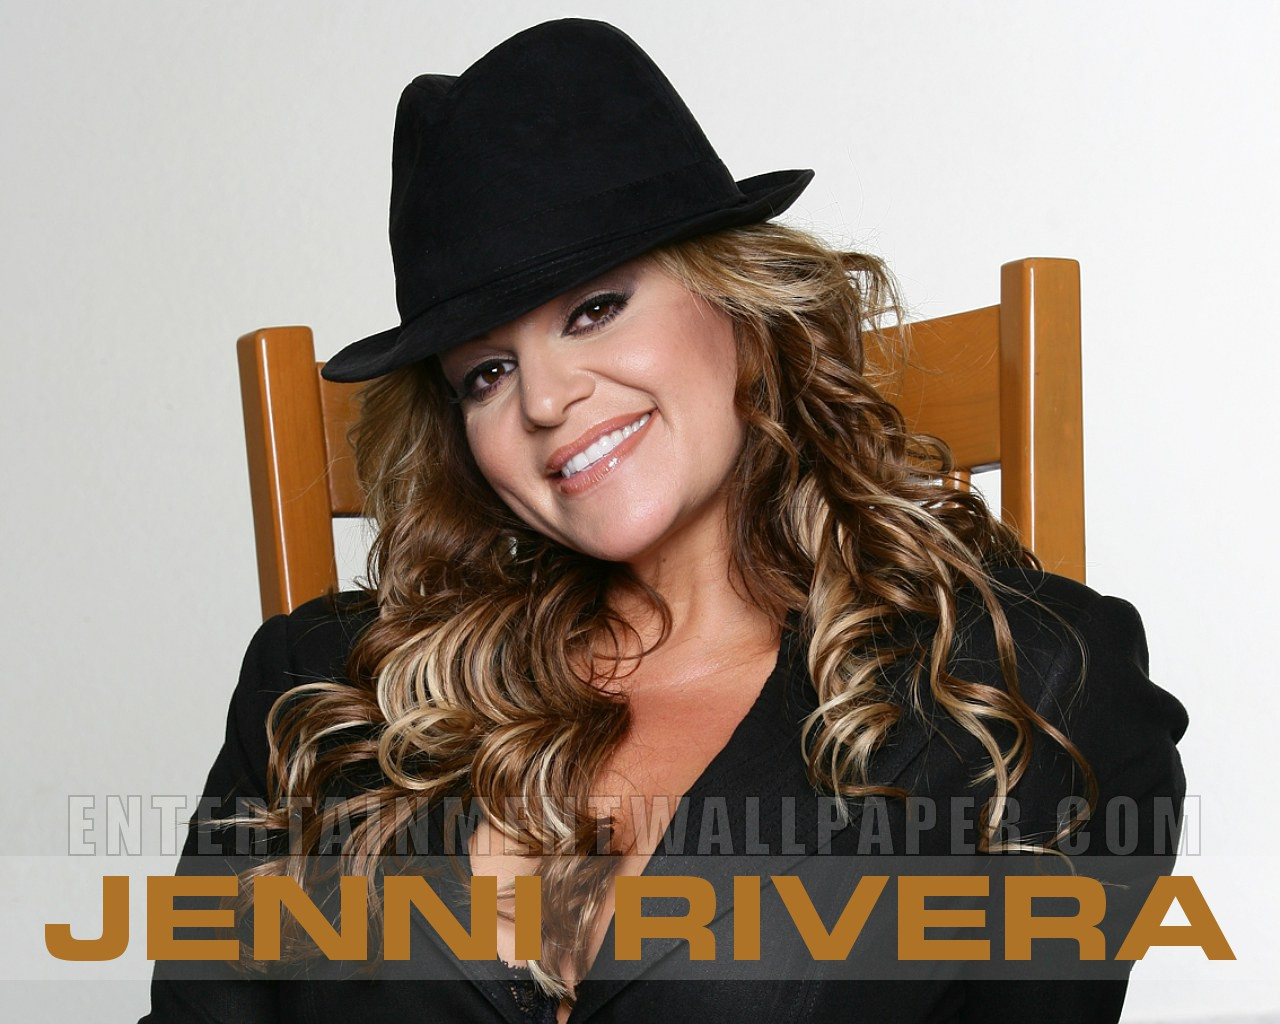 Jenni Rivera's family 'DISGUSTED that pictures of